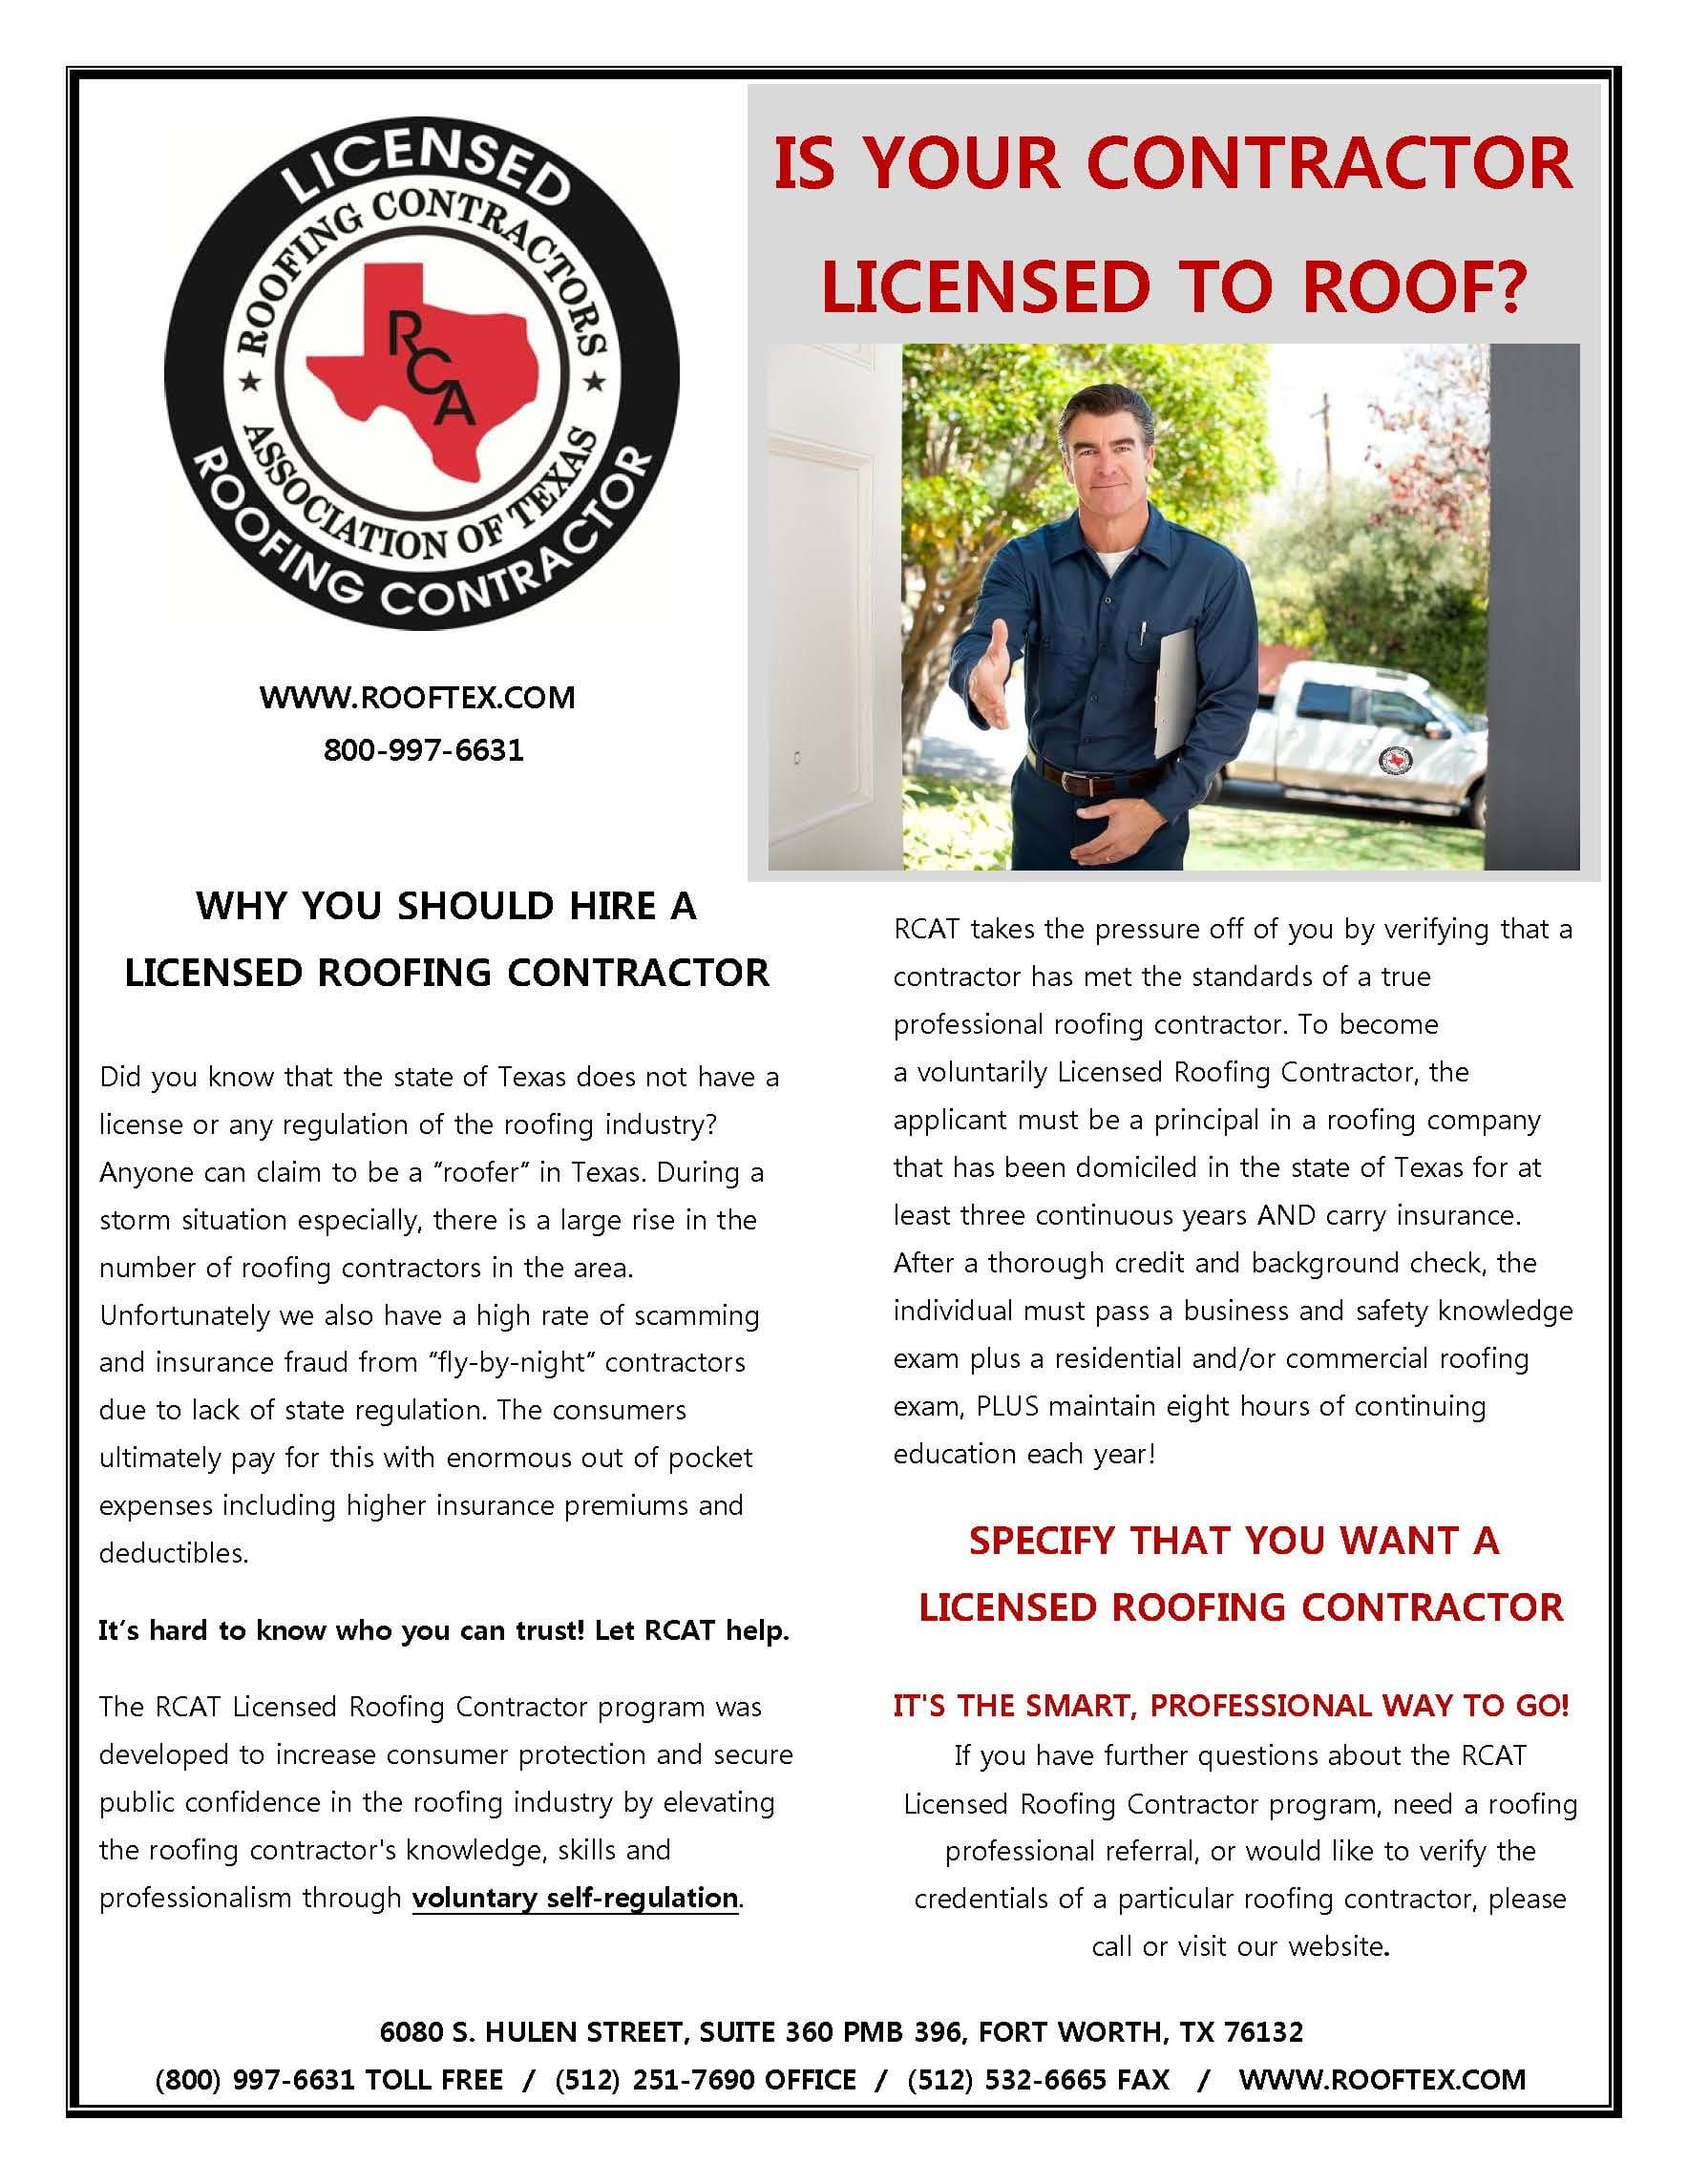 RCAT - Why You Should Hire A Licensed Roofing Contractor